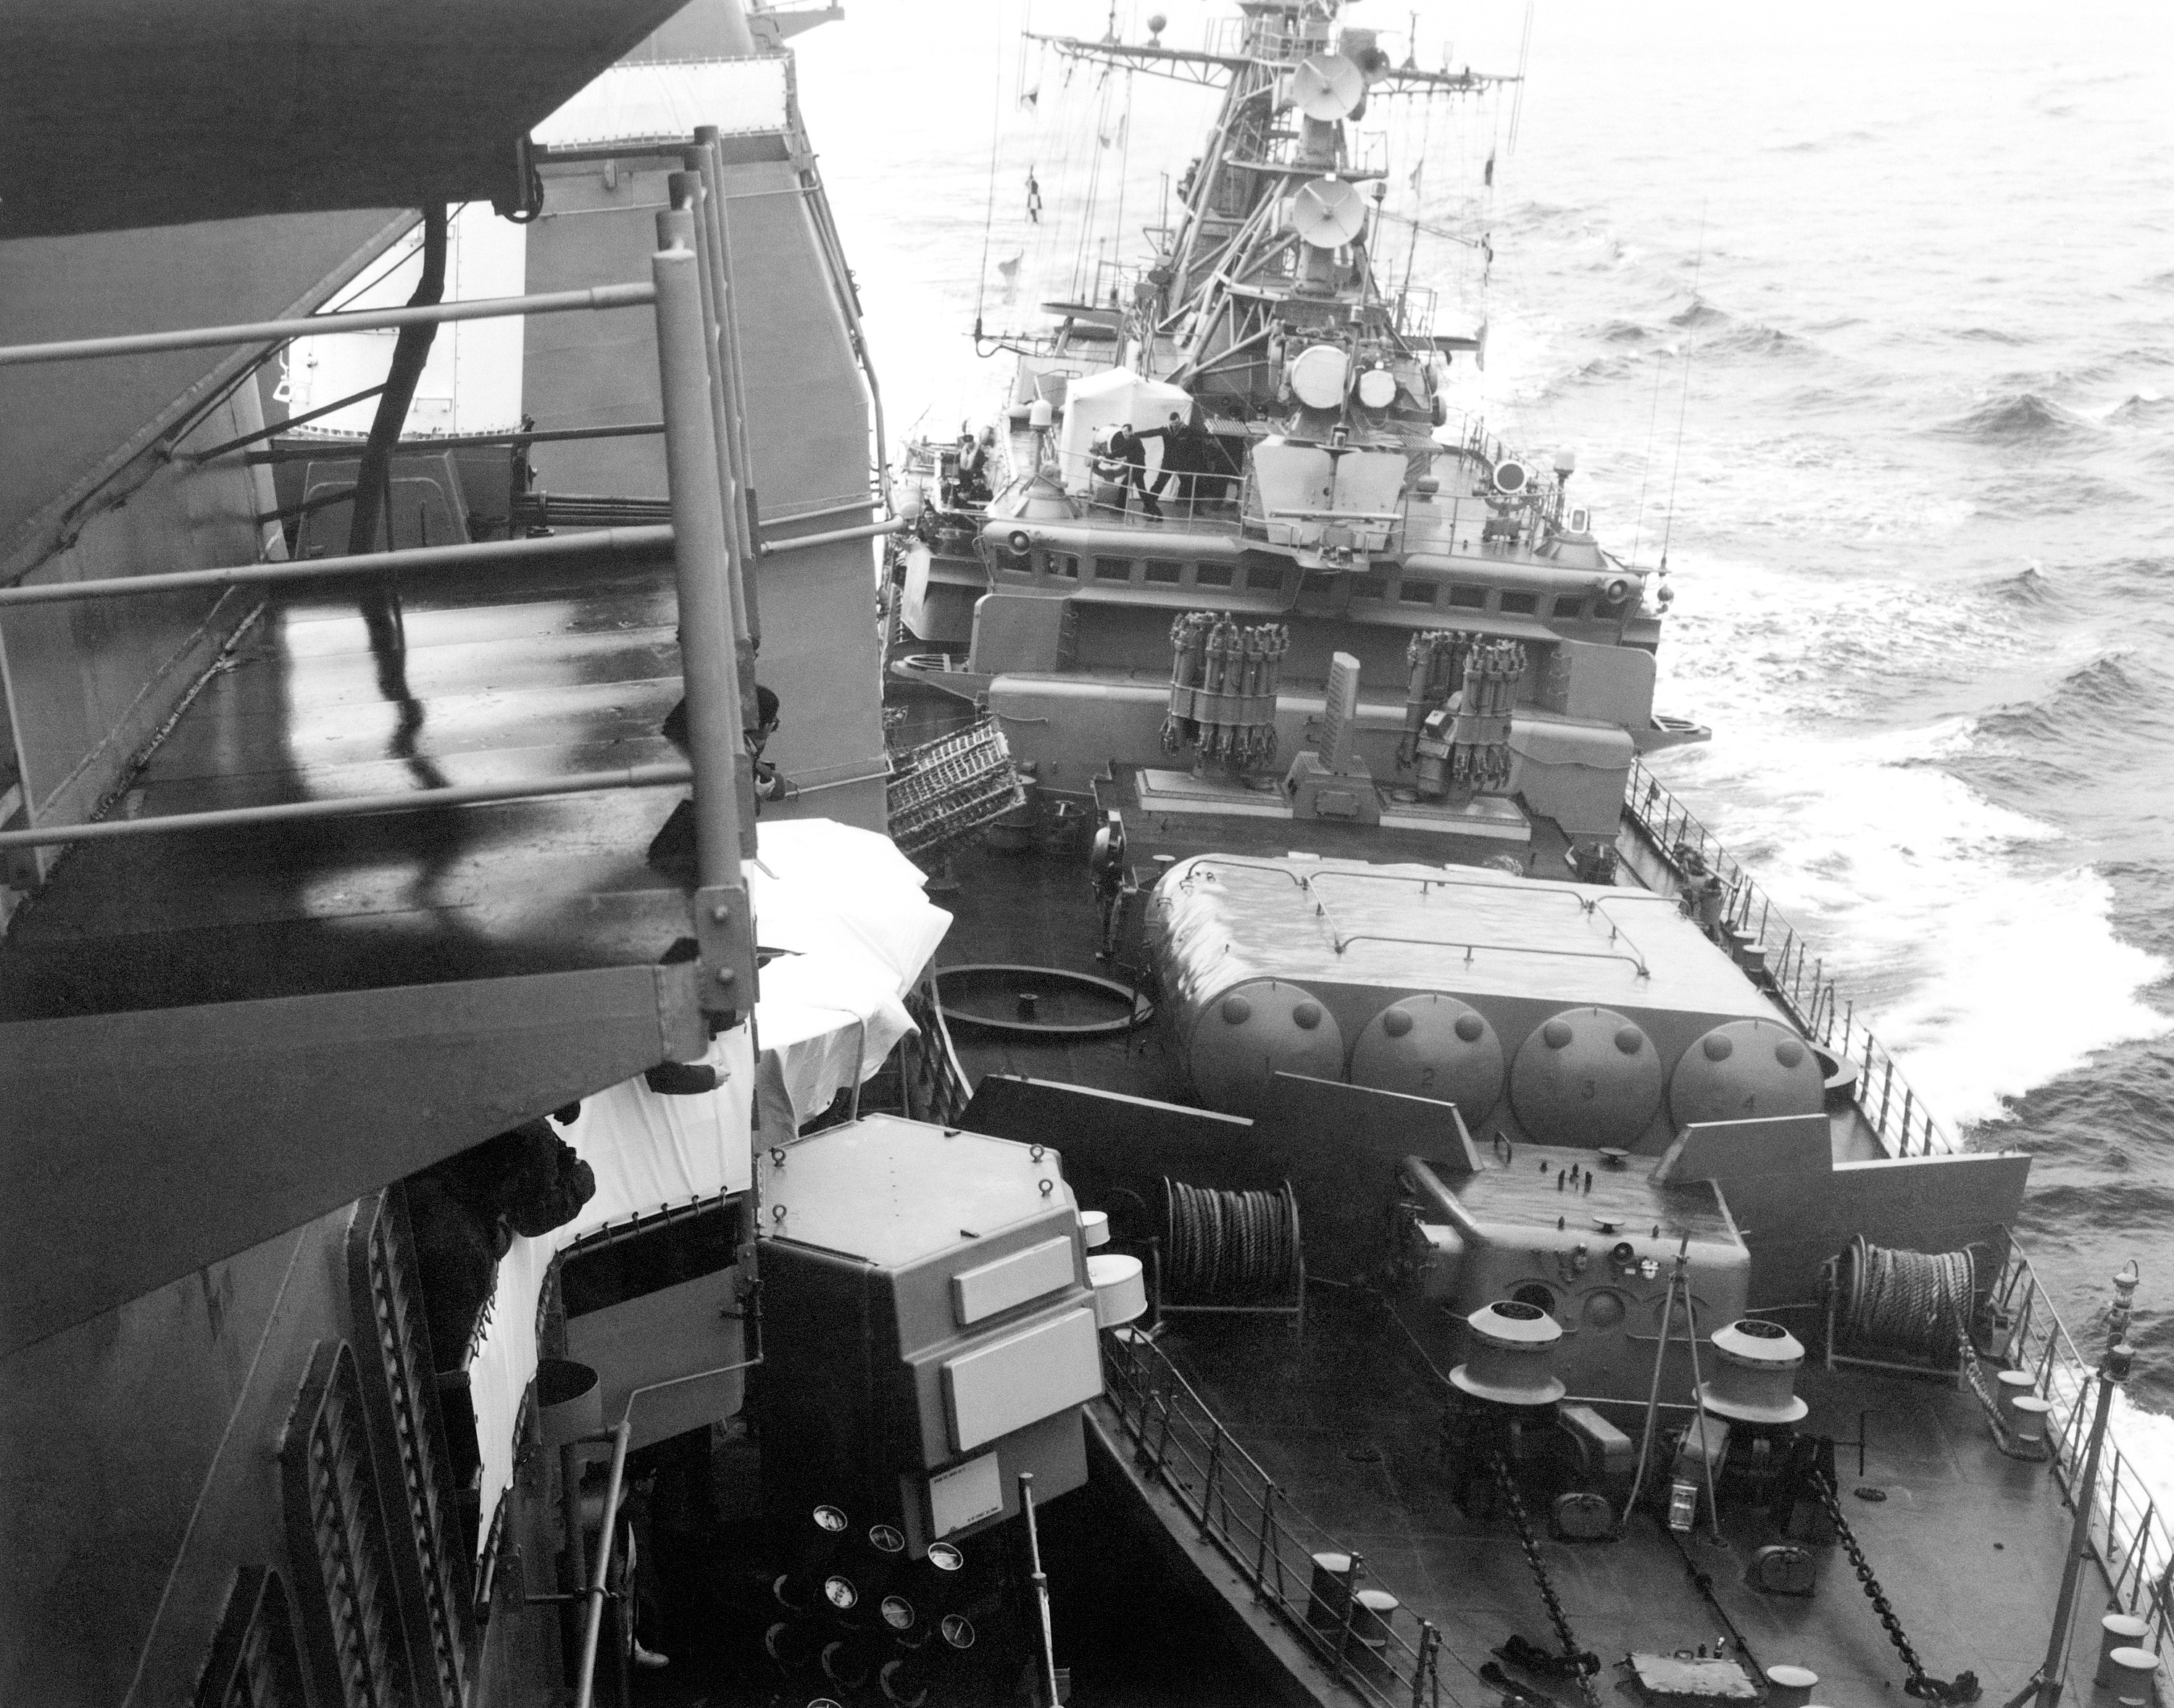 Soviet Krivak I class guided missile frigate Bezzavetny (FFG 811) as it impacts guided missile cruiser USS Yorktown (CG 48), on 12 February 1988